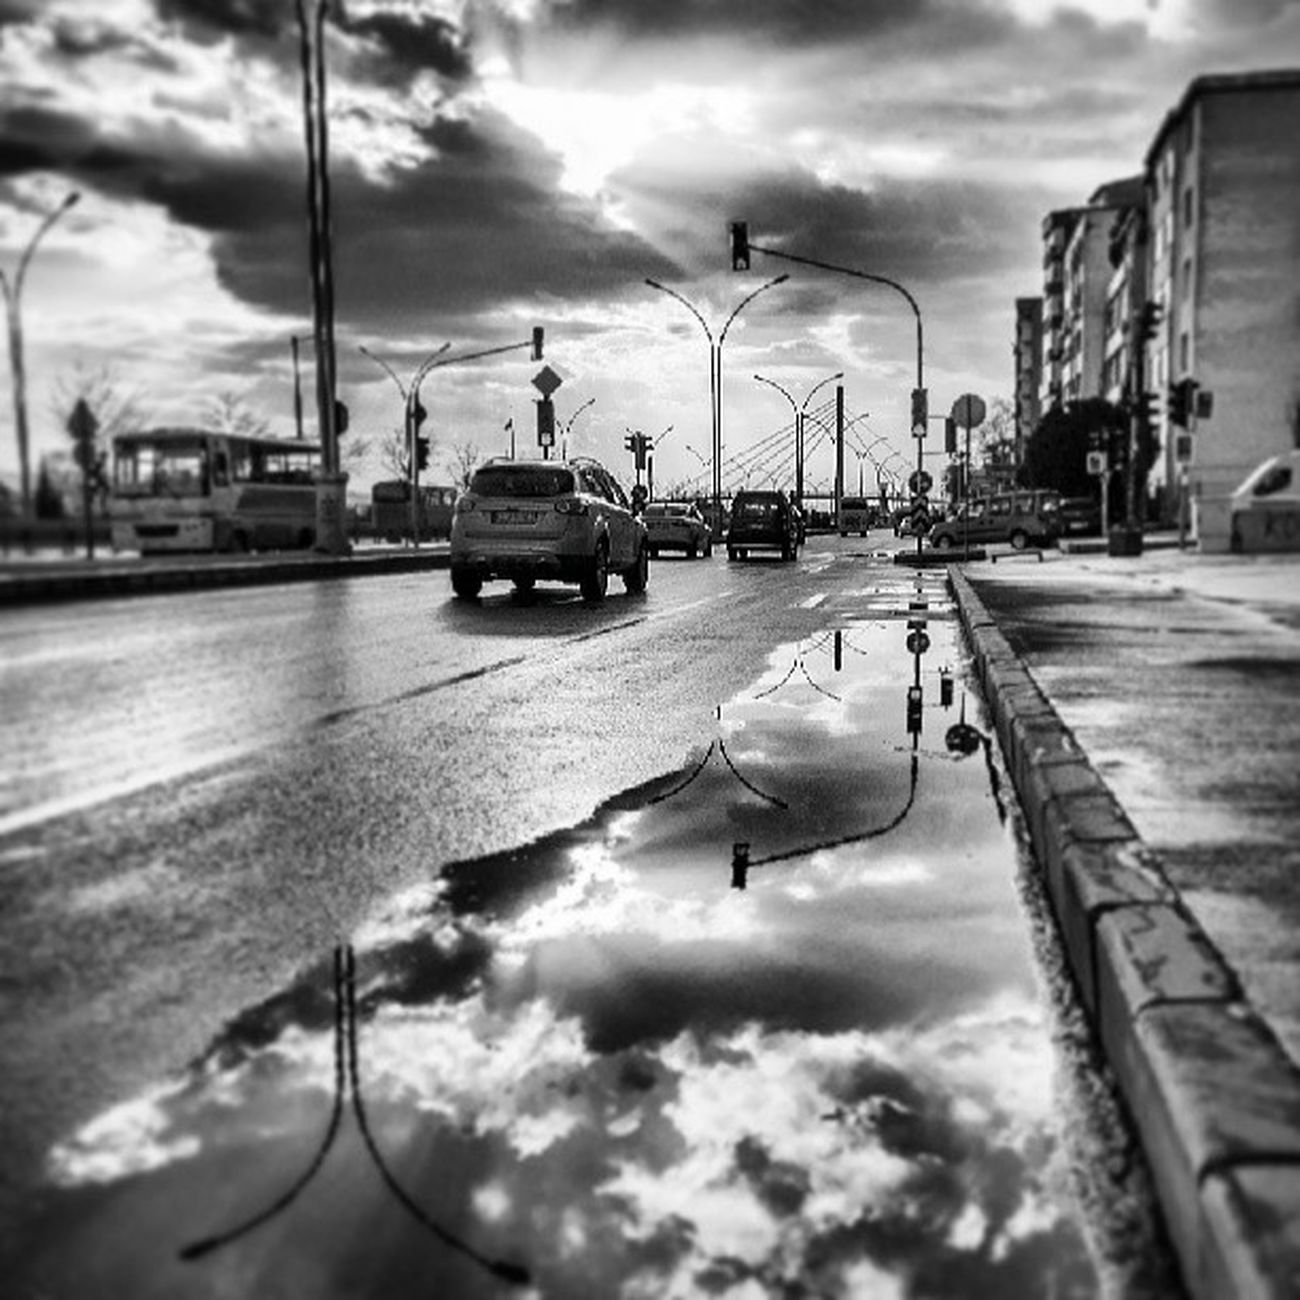 Izmit Kocaeli E5 Road travel car cloud reflection instamood picoftheday beautiful igers girl instadaily tweegram summer instagramhub follow bestoftheday happy igdaily picstitch webstagram sky nofilter